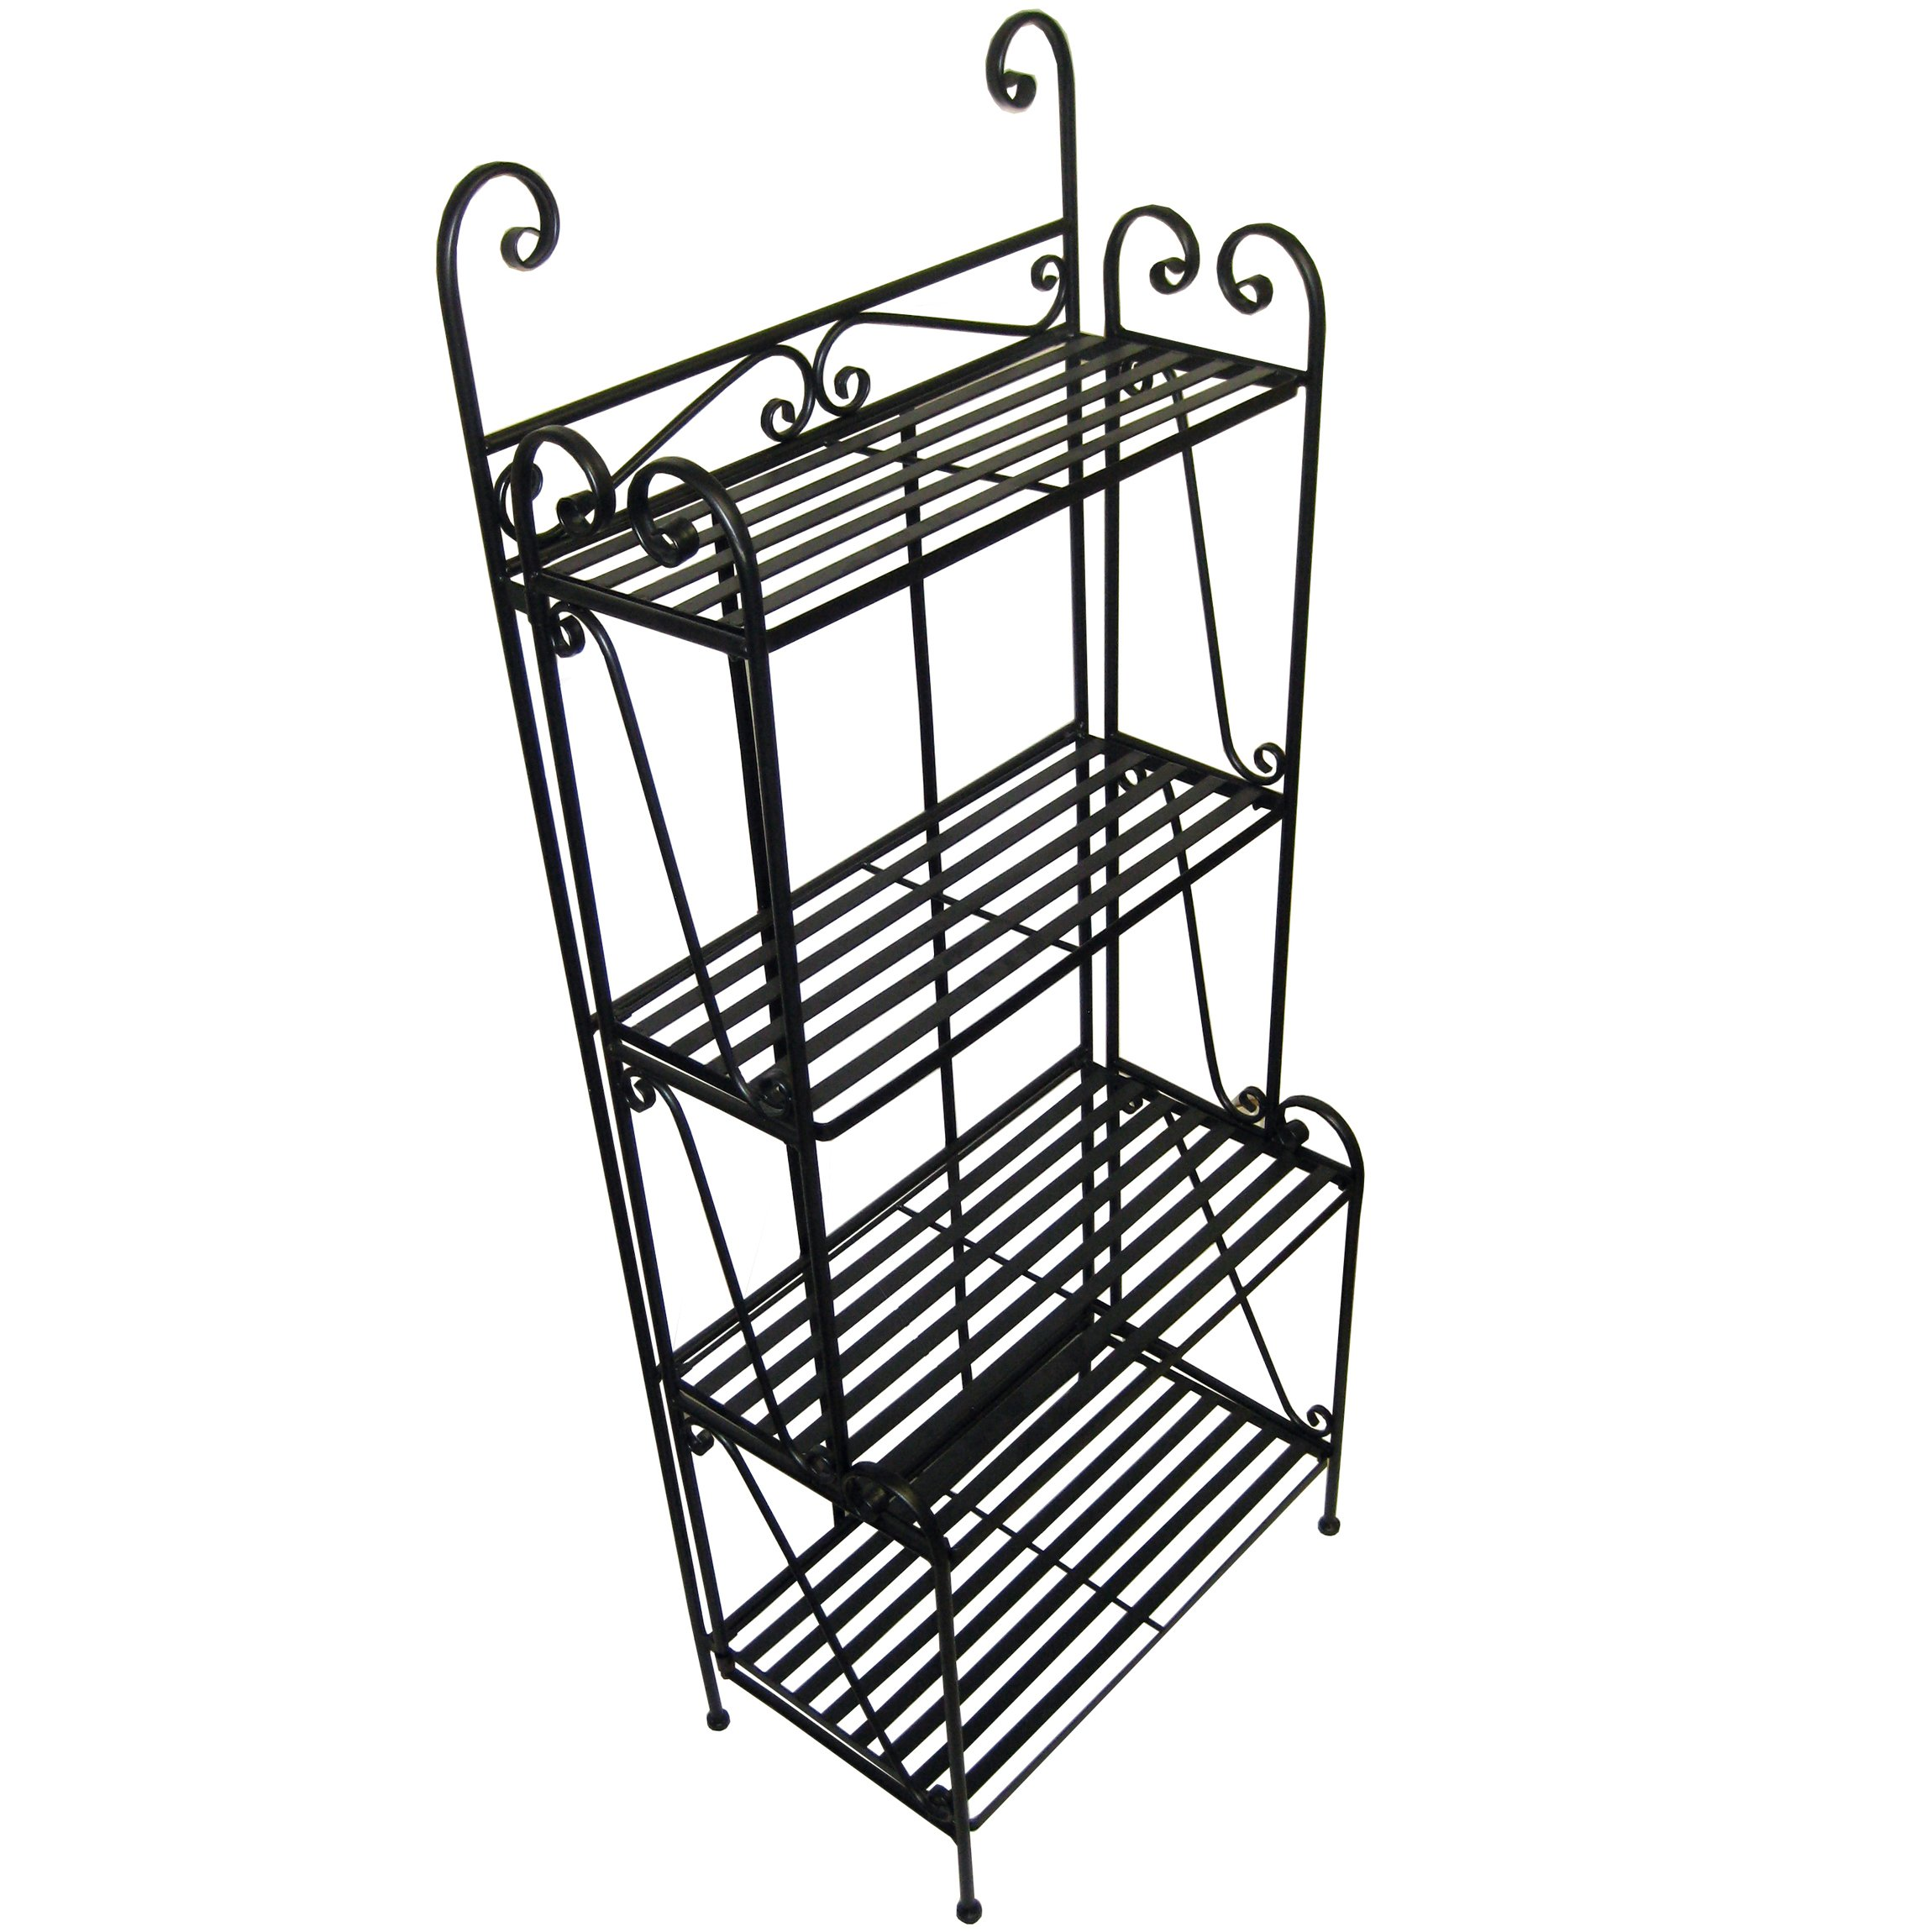 Folding Piper Bakers Rack Four Shelves - Black by Pangaea Home and Garden